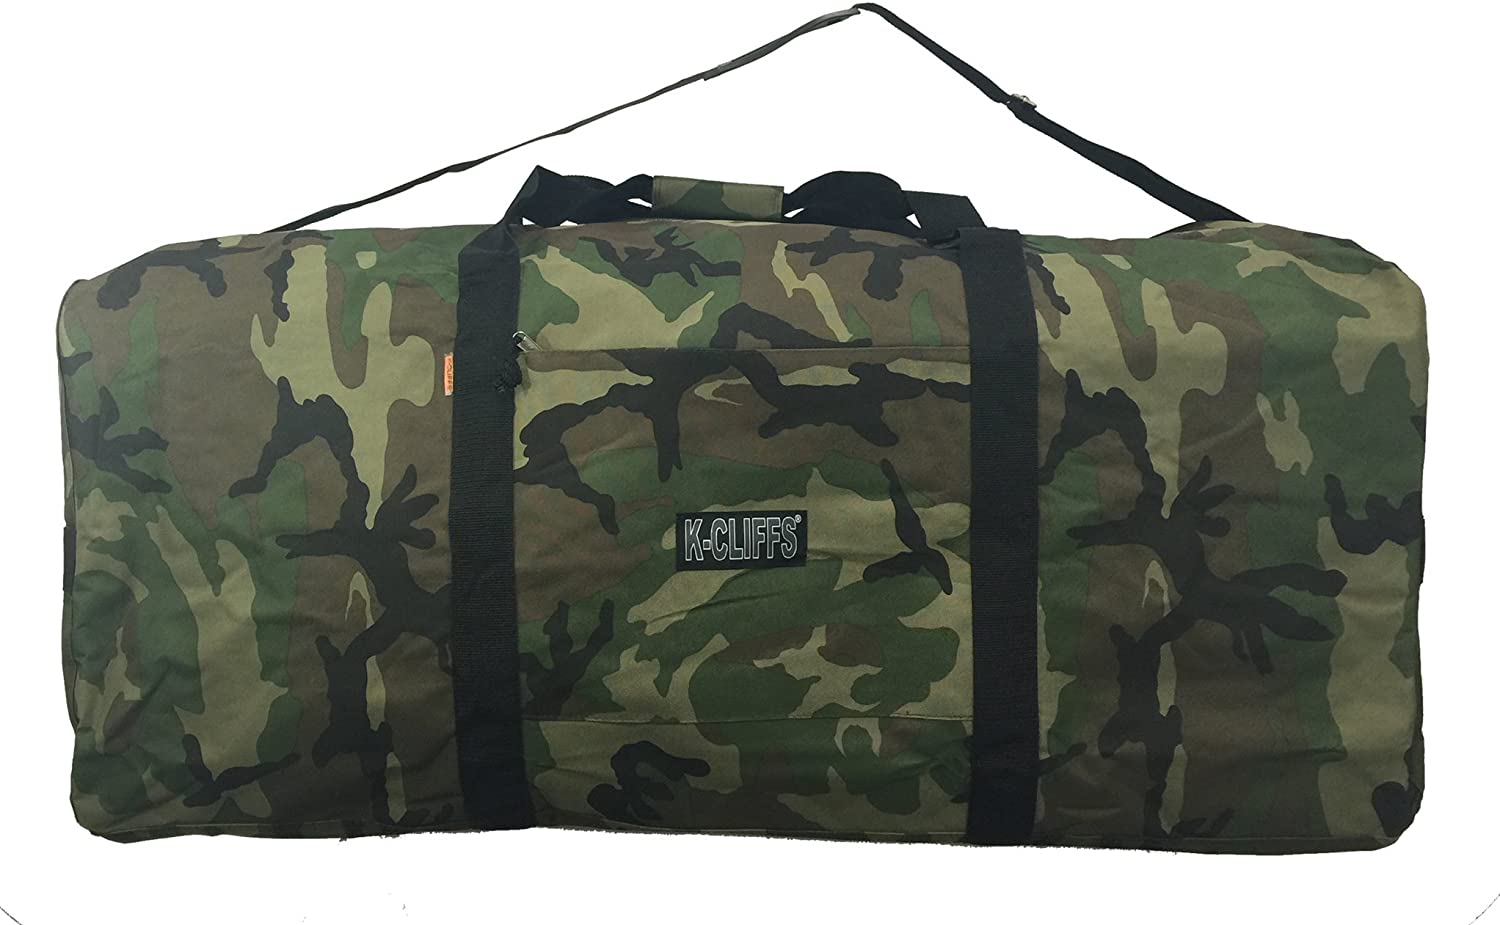 "Heavy Duty Cargo Duffel Large Sport Gear Drum Set Equipment Hardware Travel Bag Rooftop Rack Bag (42"" x 20"" x 20"", Camouflage)"